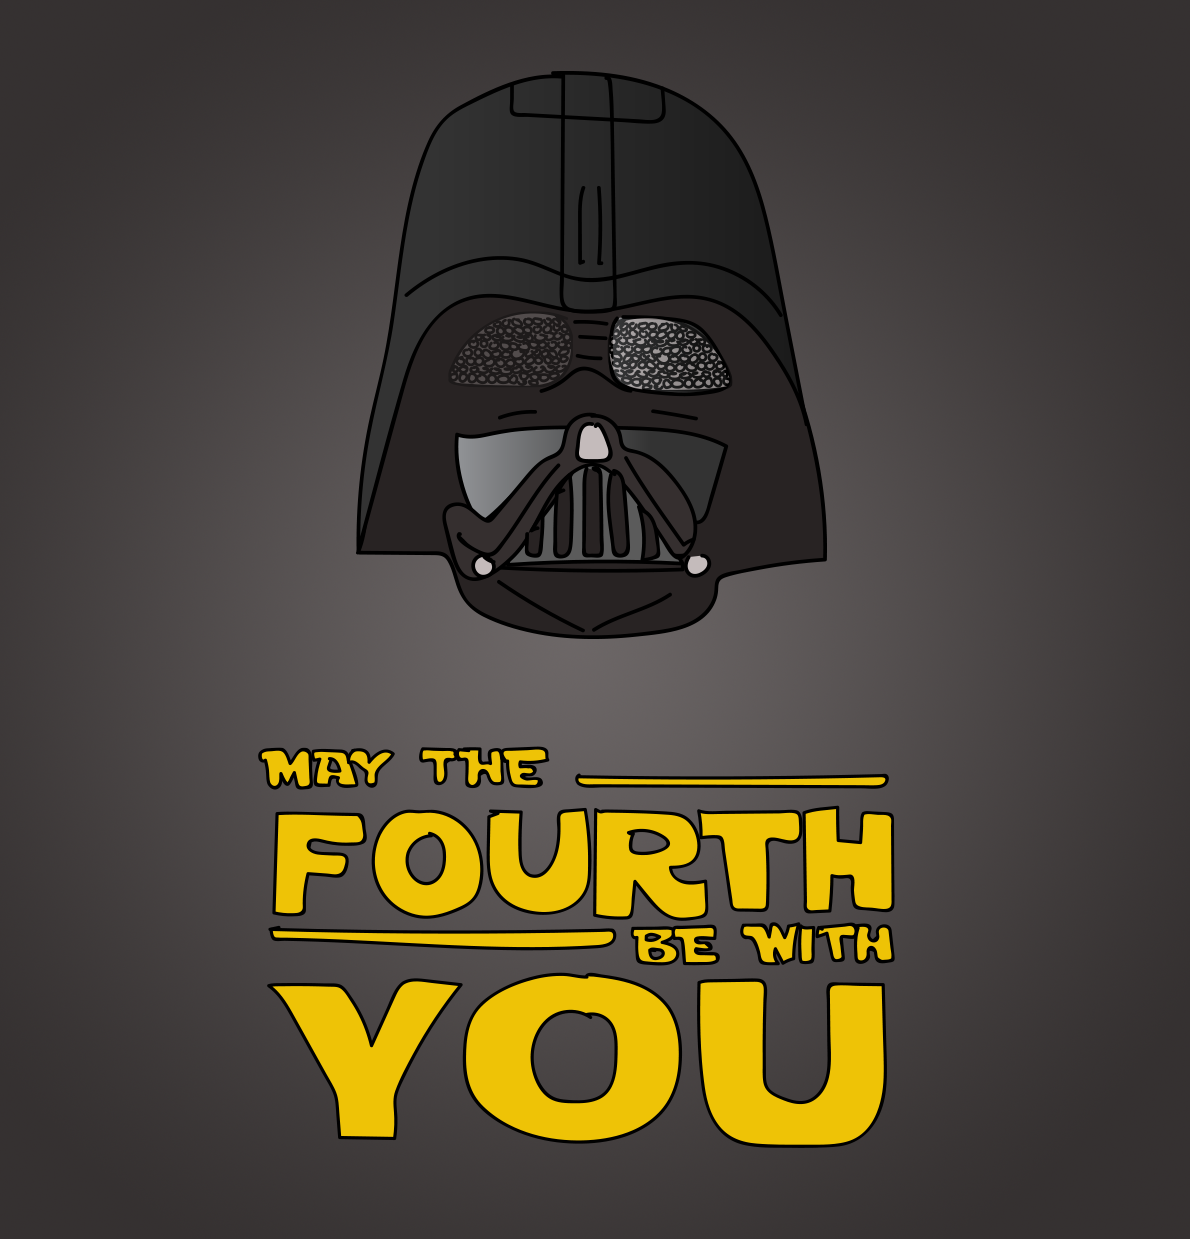 May the Fourth be with you illustration